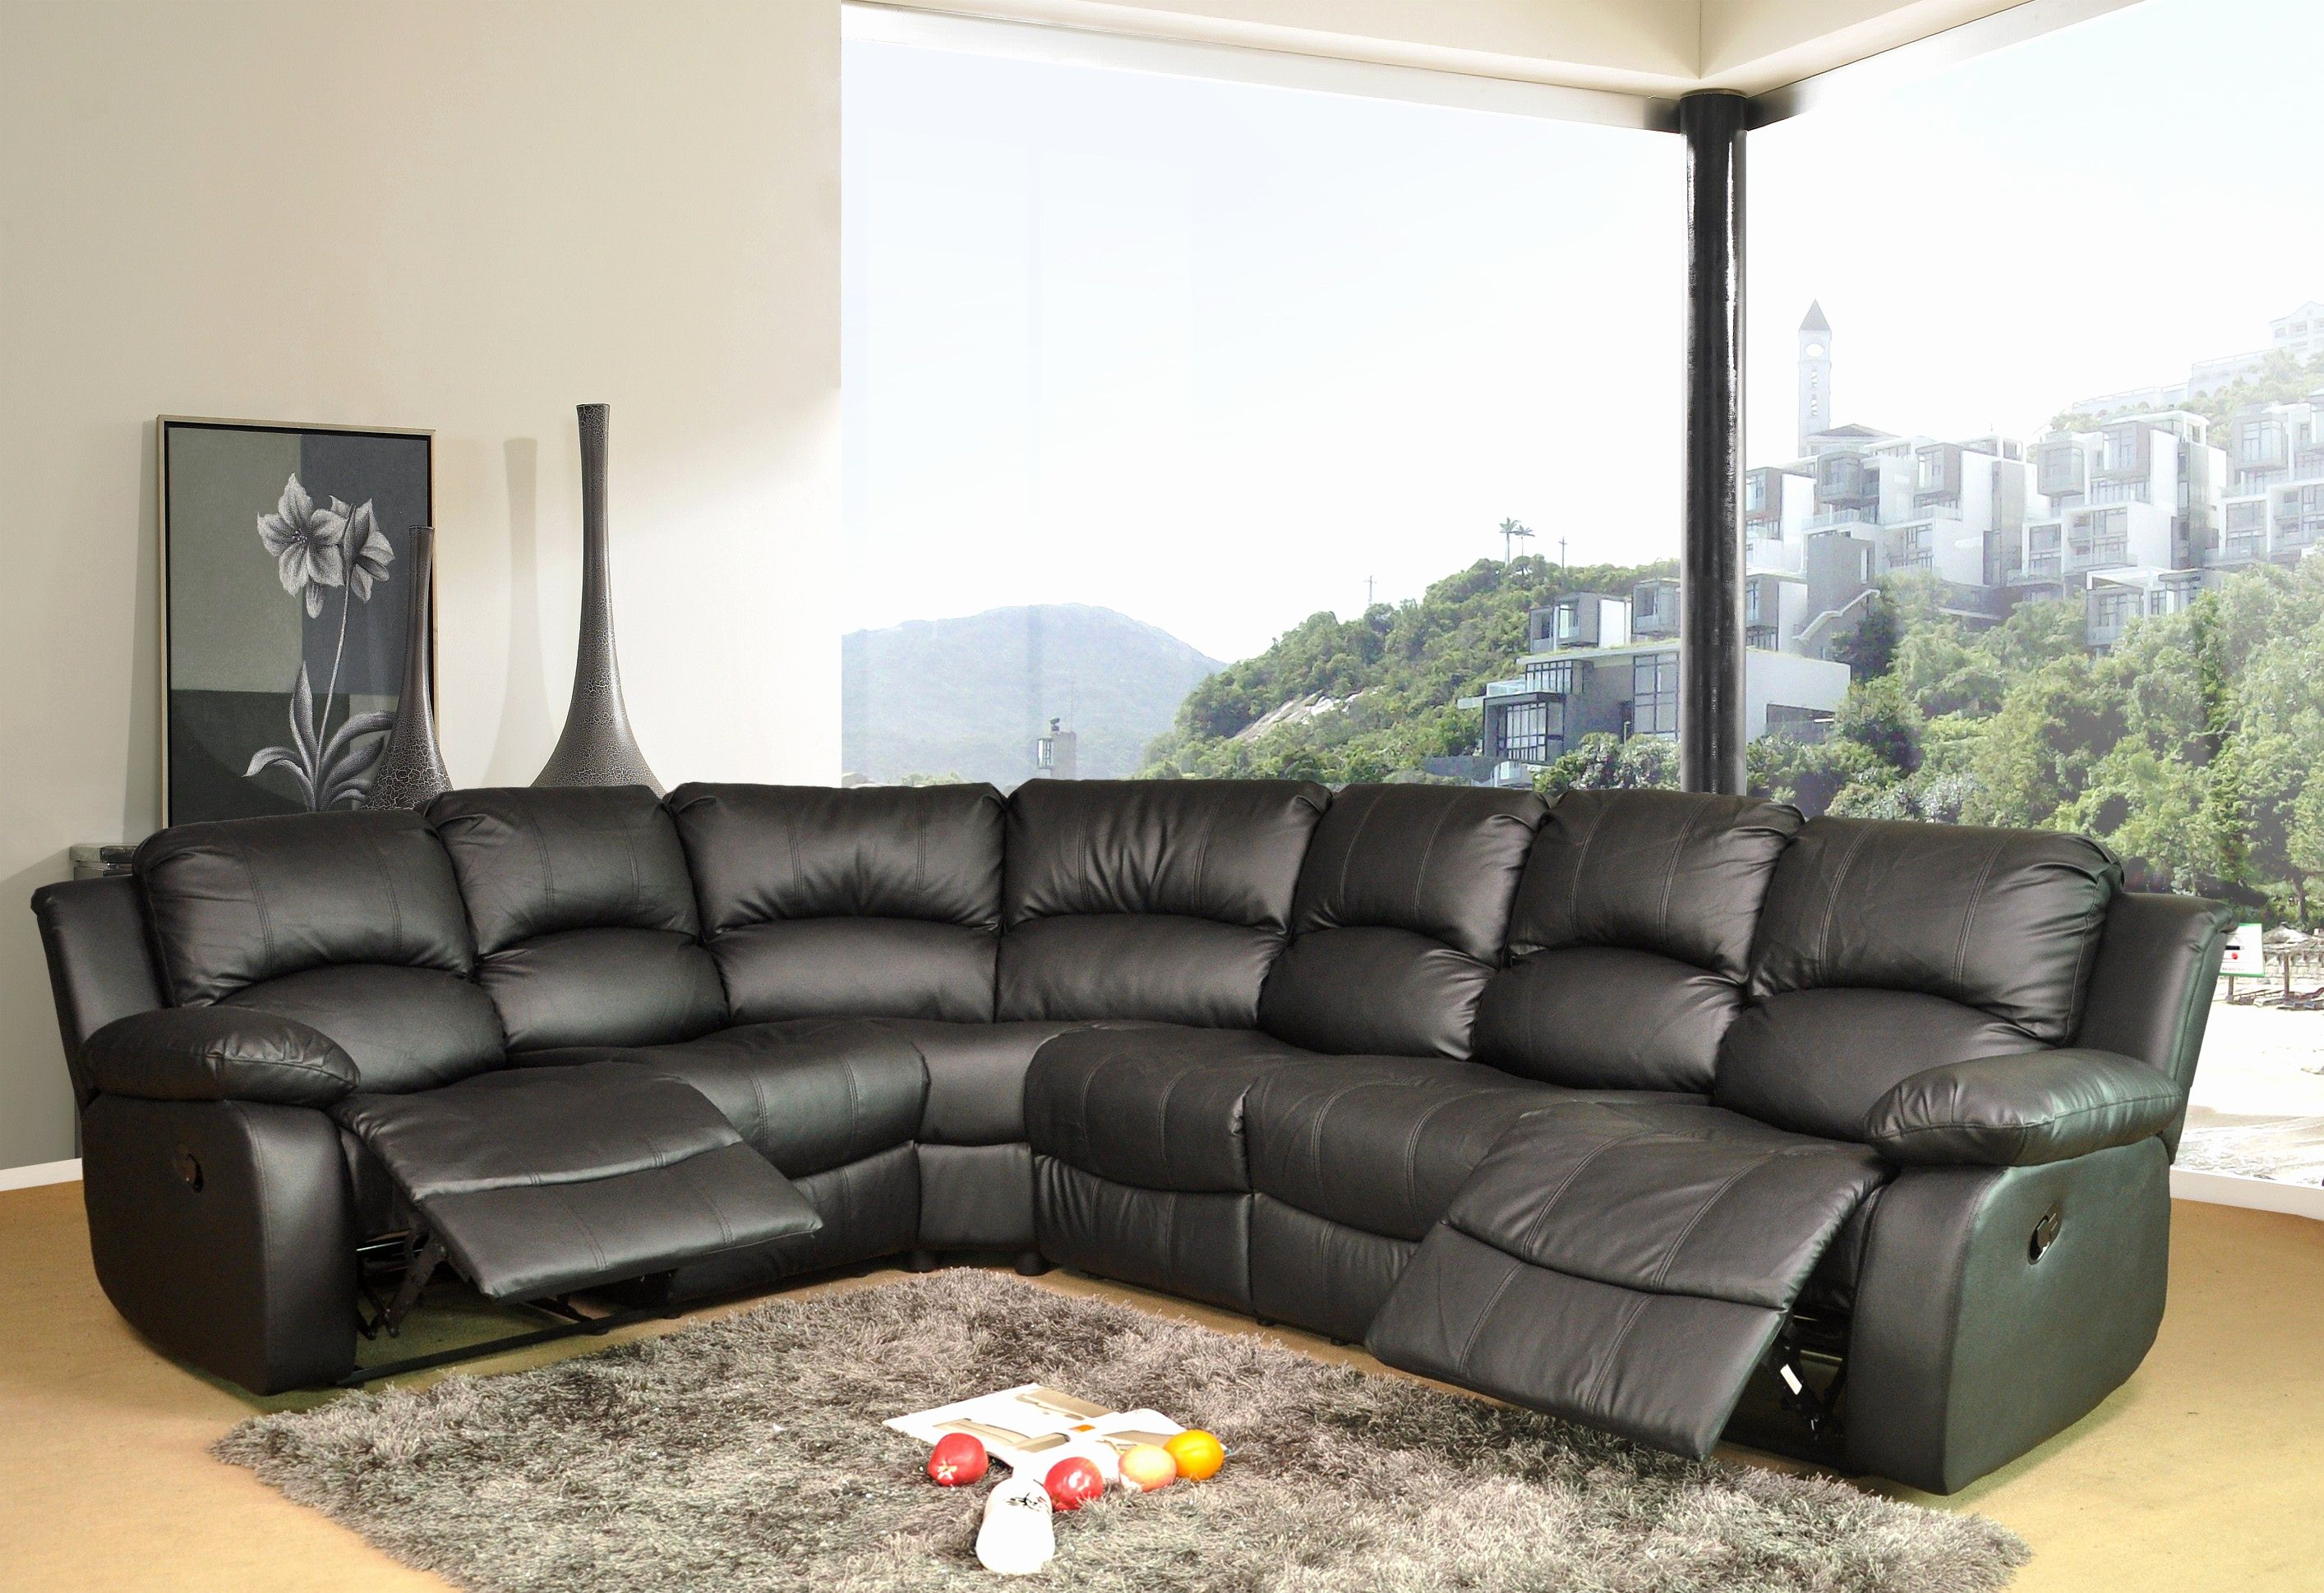 Best Of Cream Leather Corner Sofa Image Sofas Scifihits Check More At Http